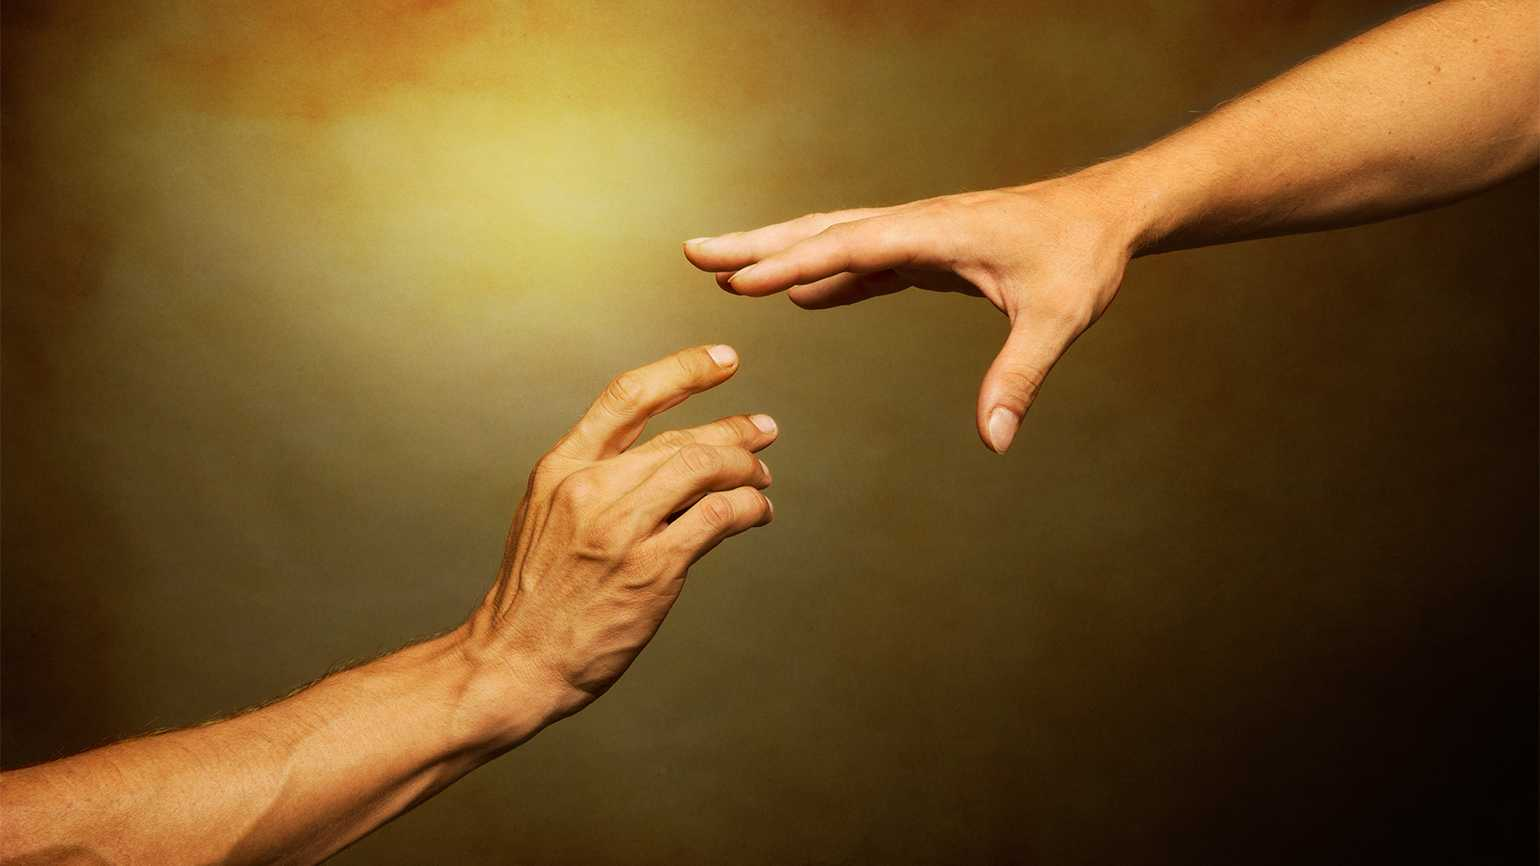 A helping hand outstretched to another